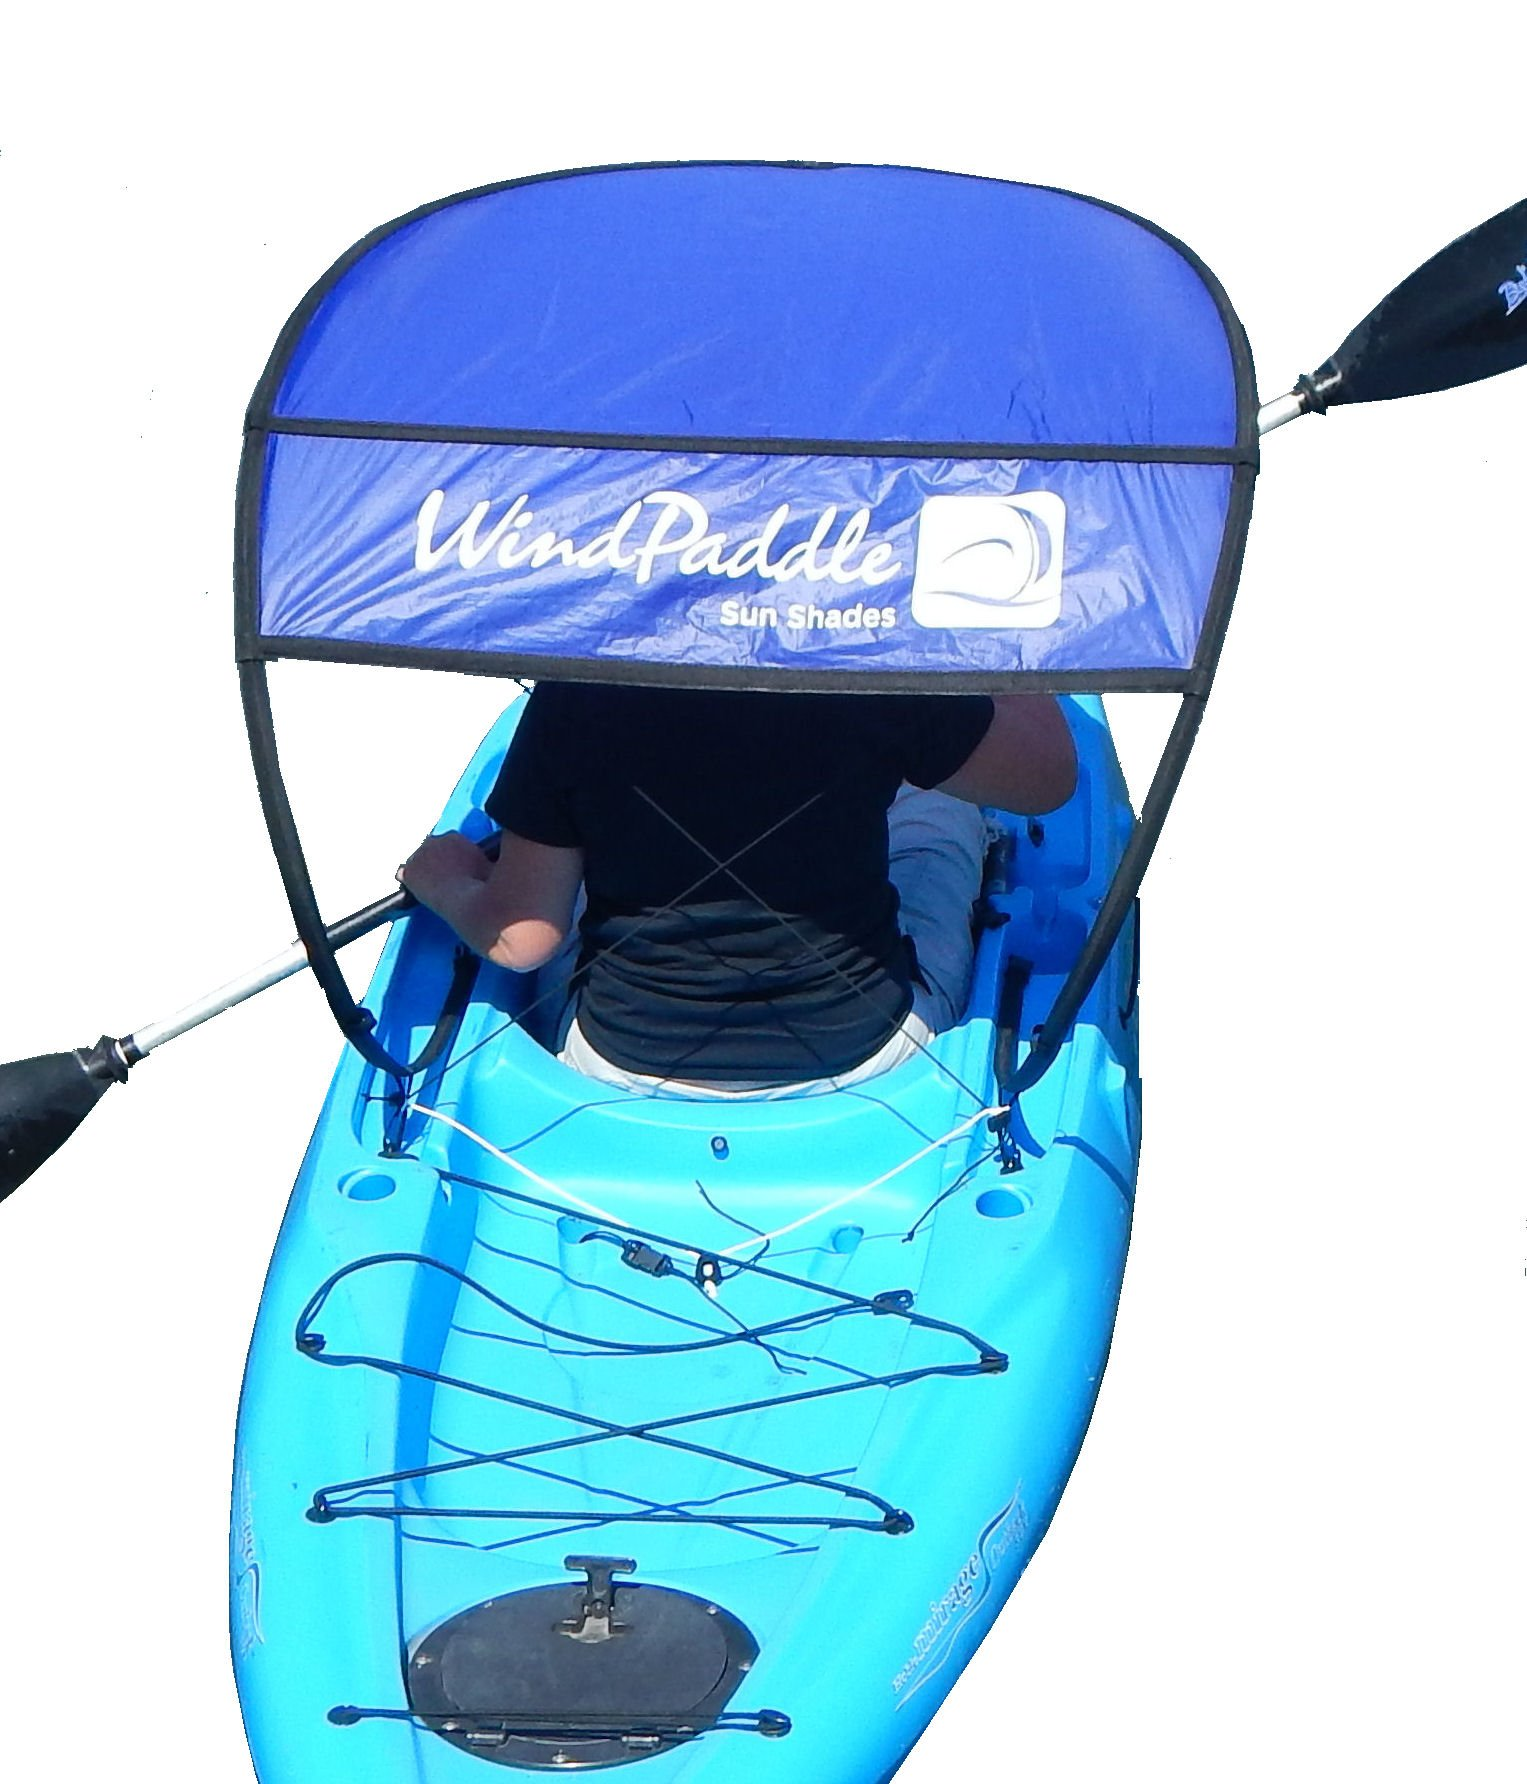 WindPaddle Sails Sun Shade for Kayaks and Canoes SUP's and Inflatables, Blue, Large